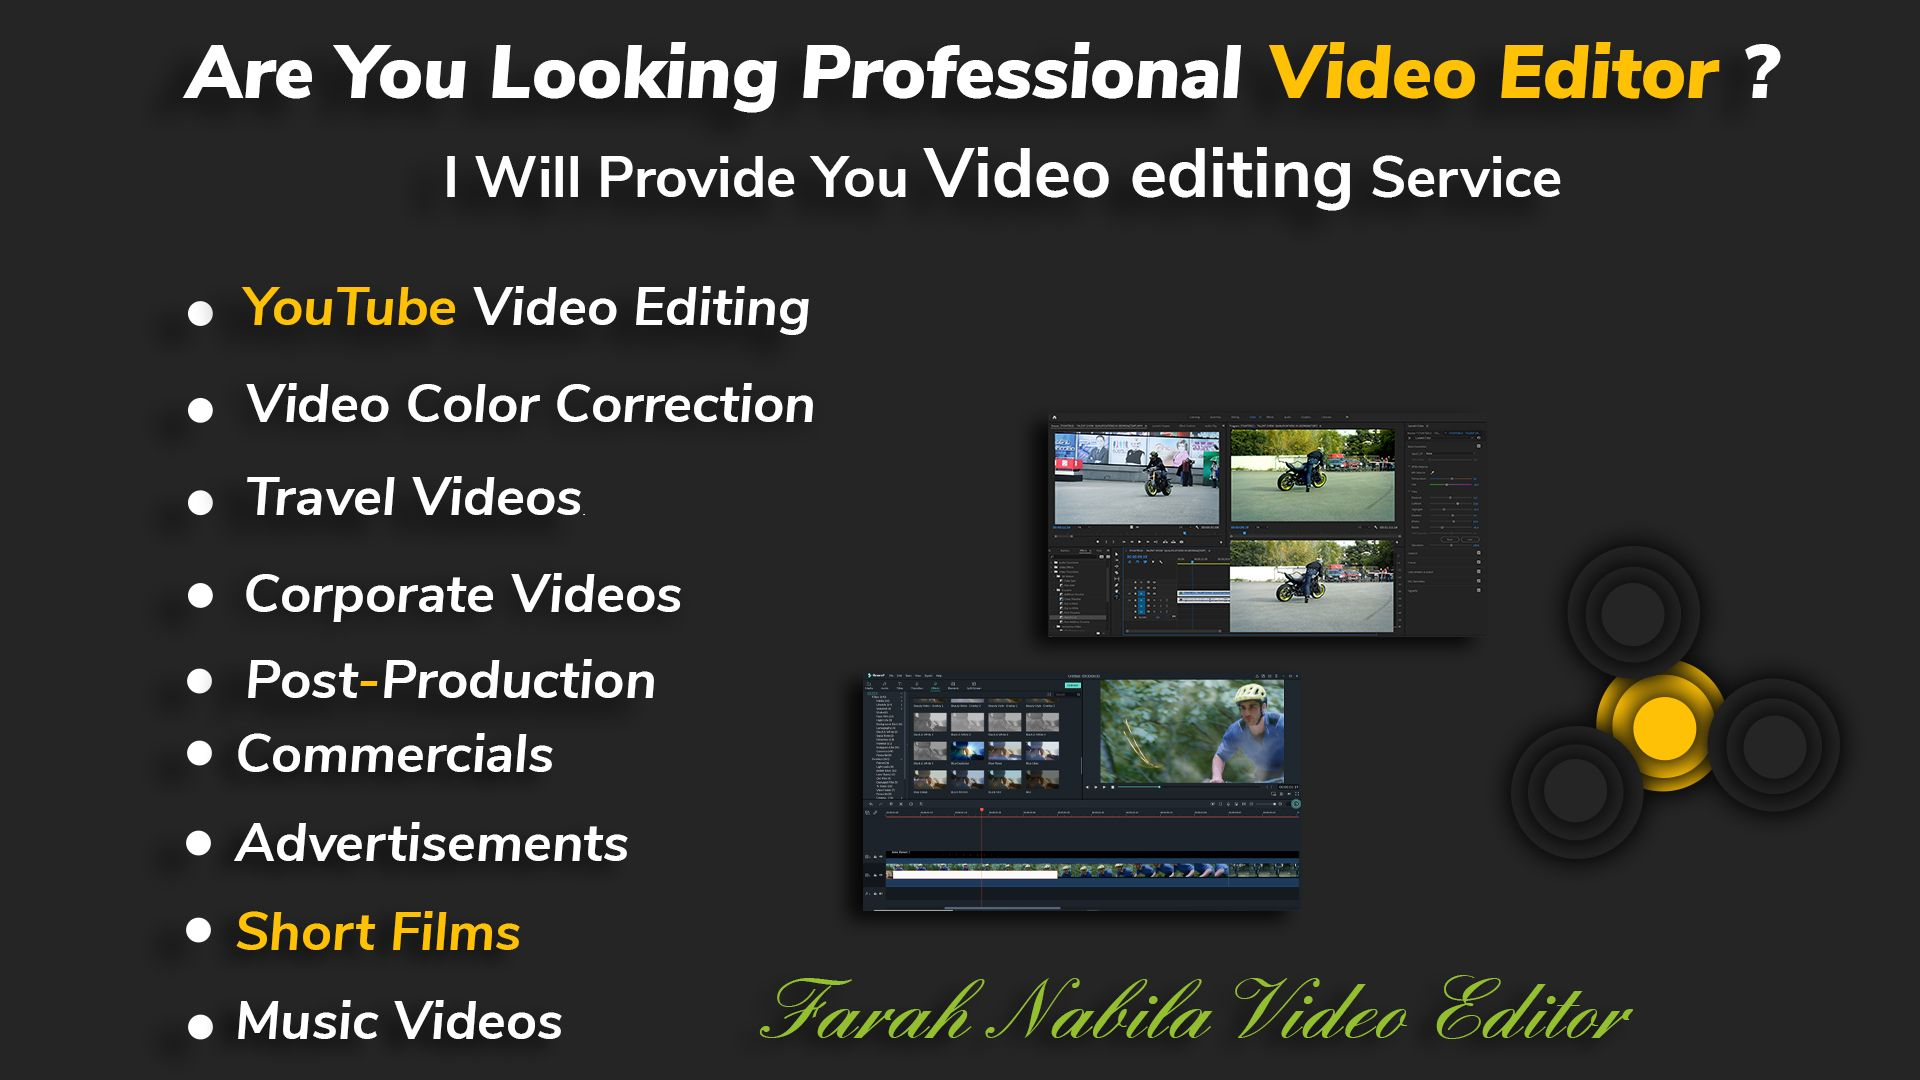 Video Editing Service In 2020 Video Editing Corporate Videos Editing Service